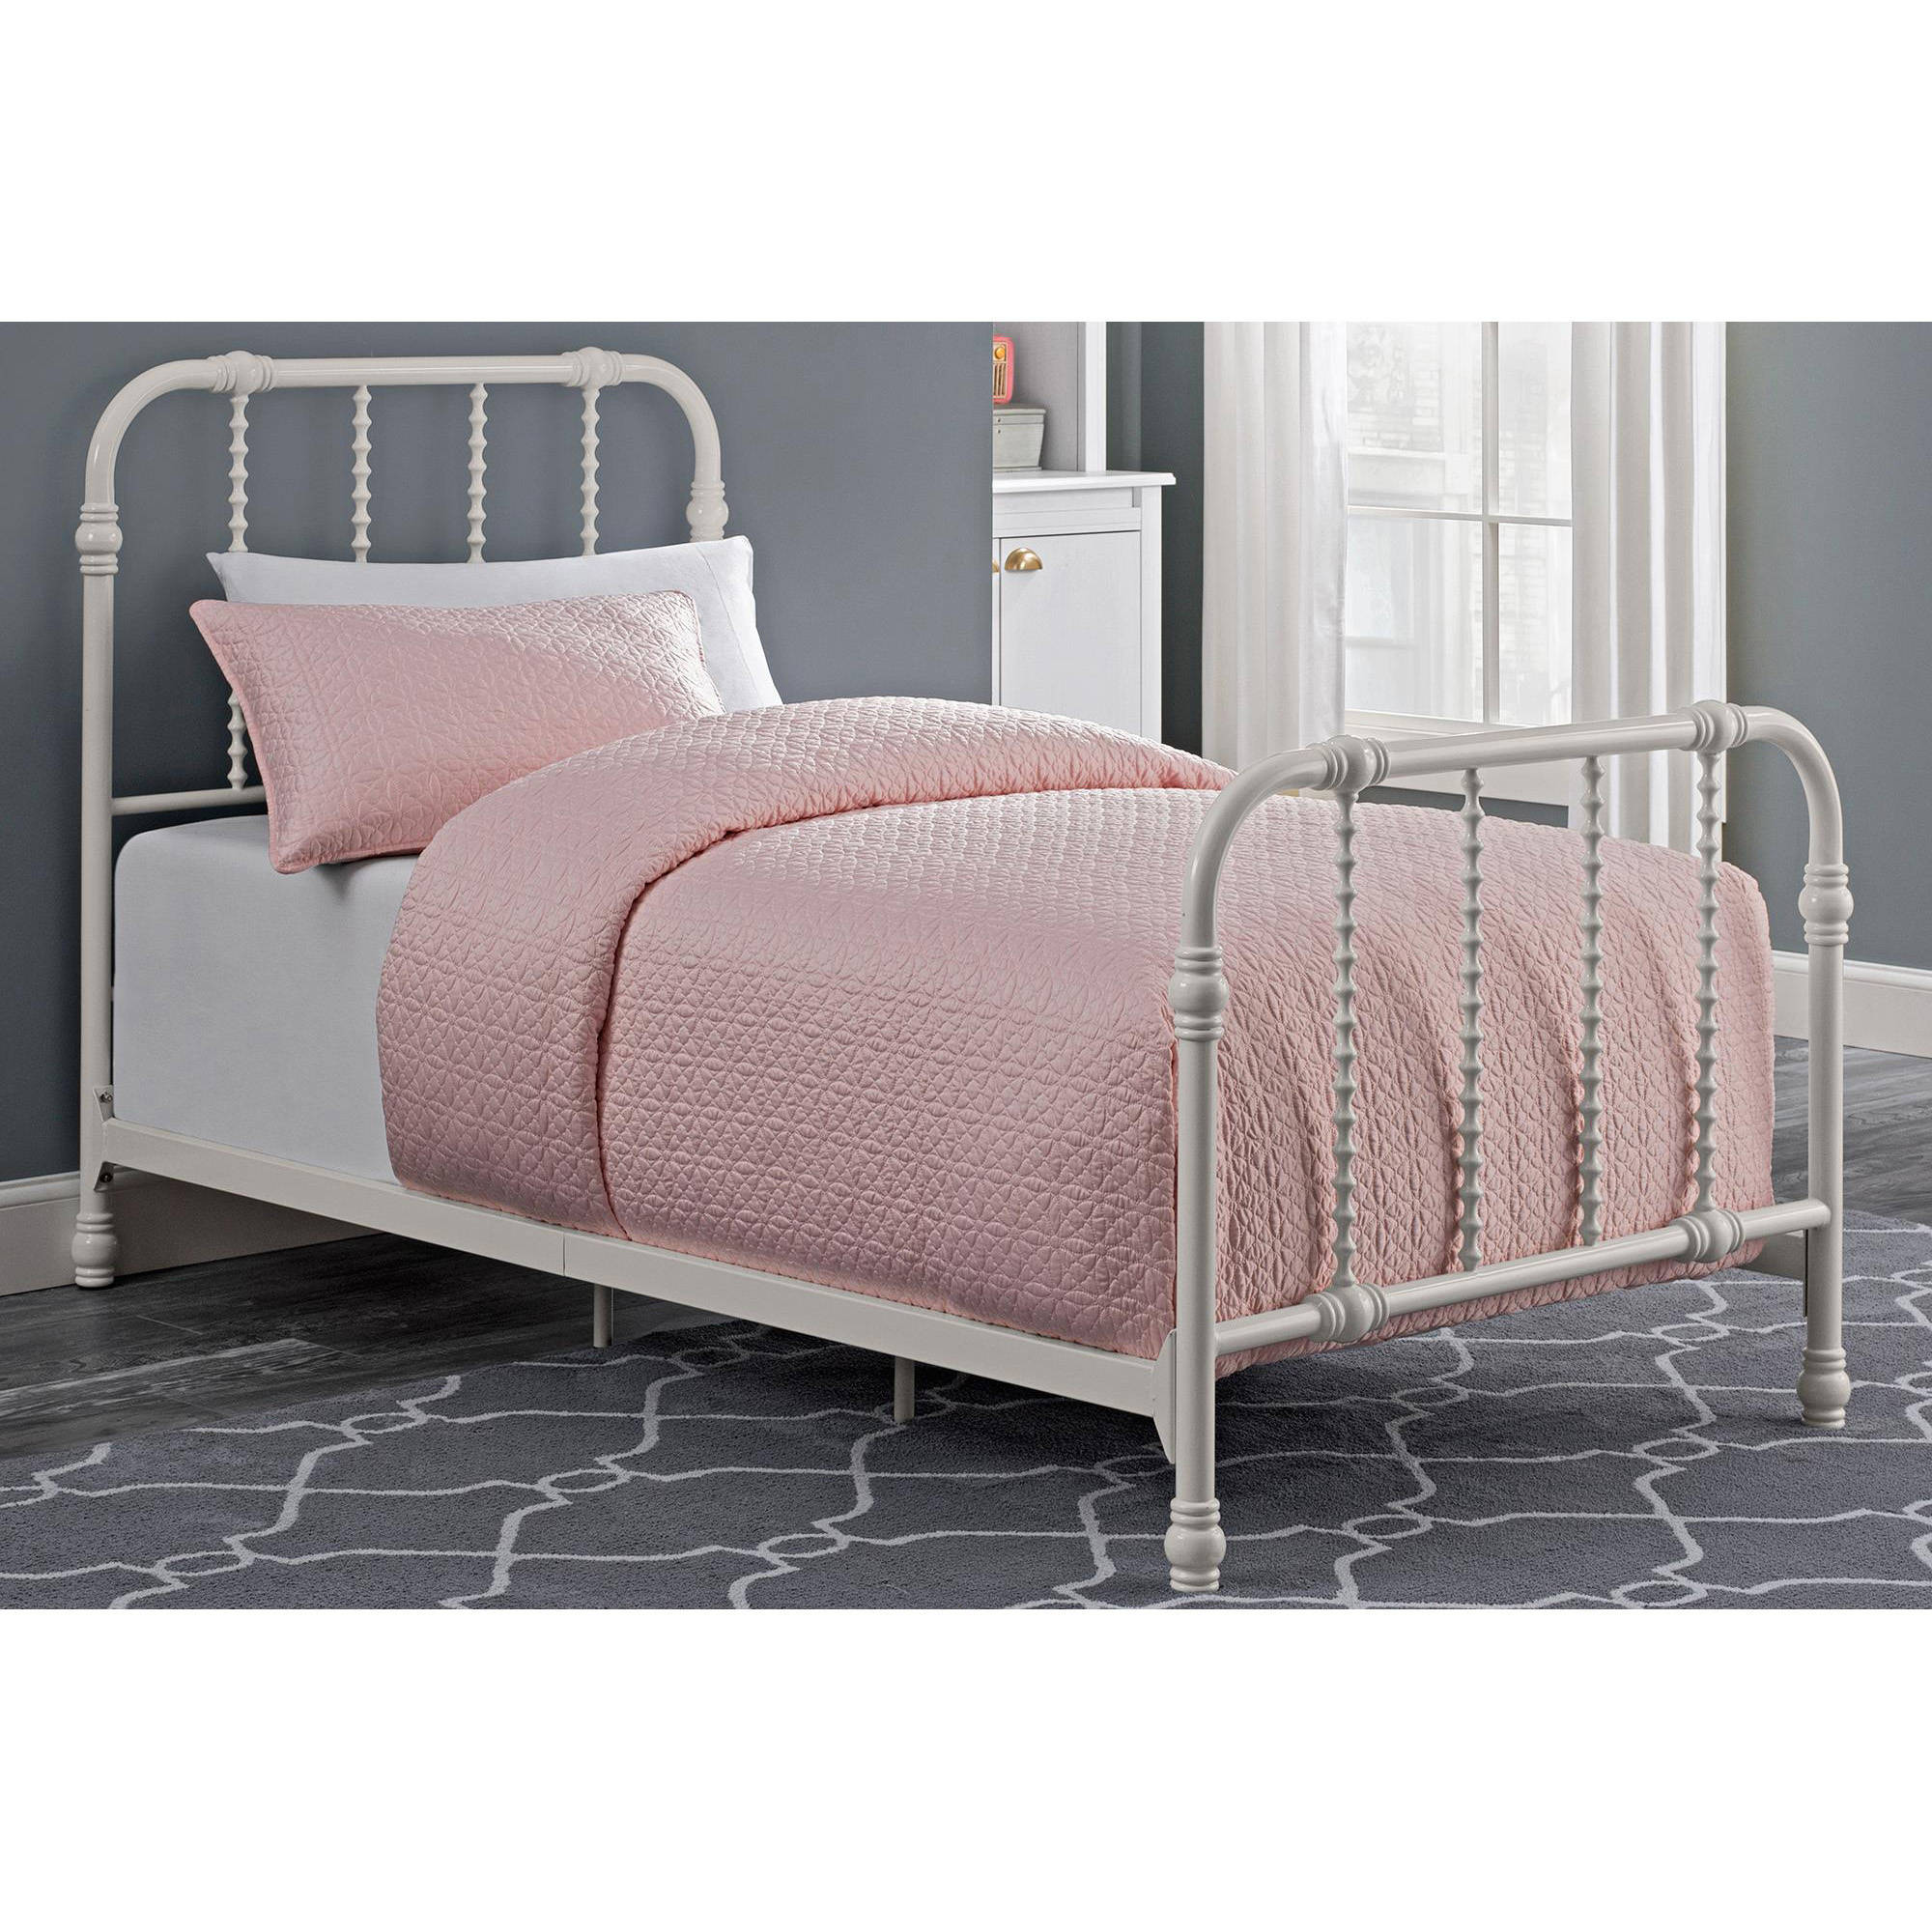 Dorel Home DHP Jenny Lind Scroll Twin Metal Bed, White